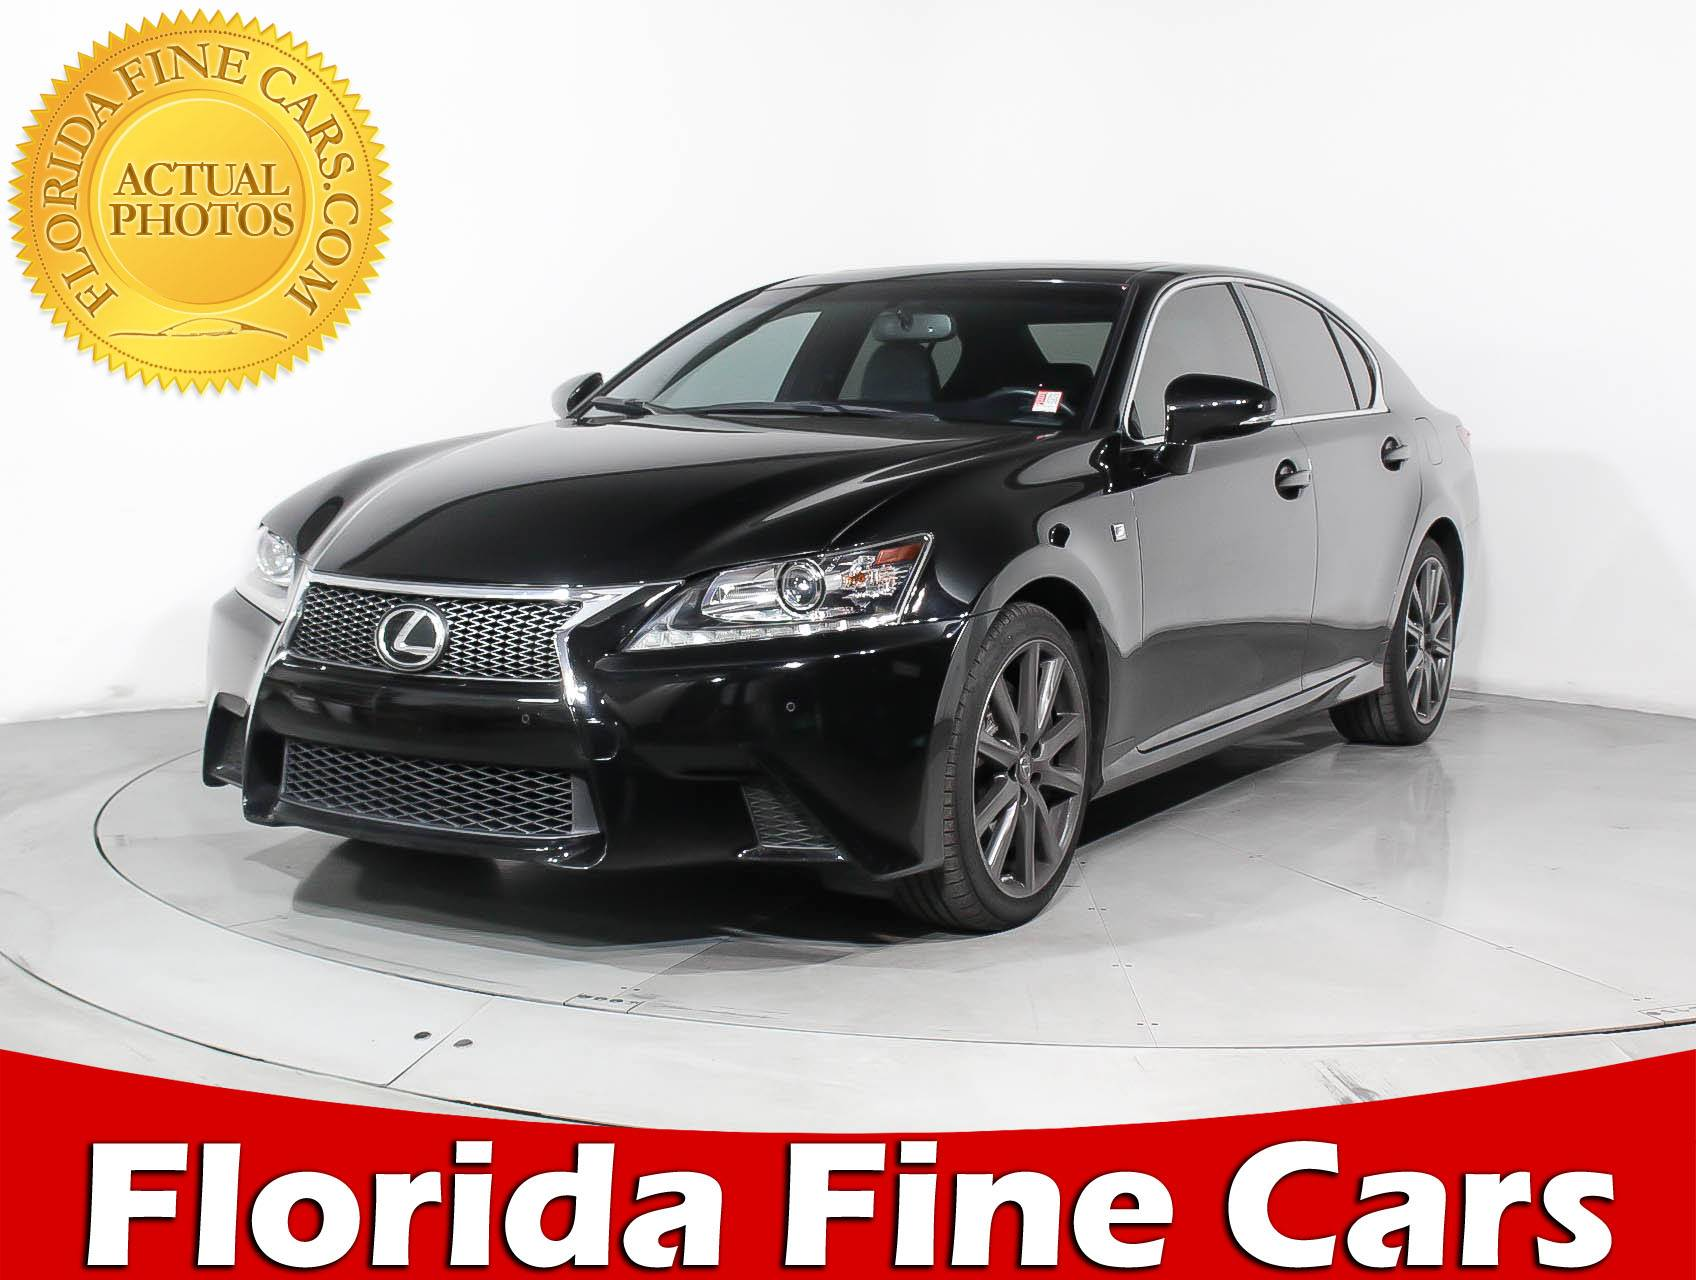 50 Best 2015 Lexus GS 350 for Sale Savings from $2 589